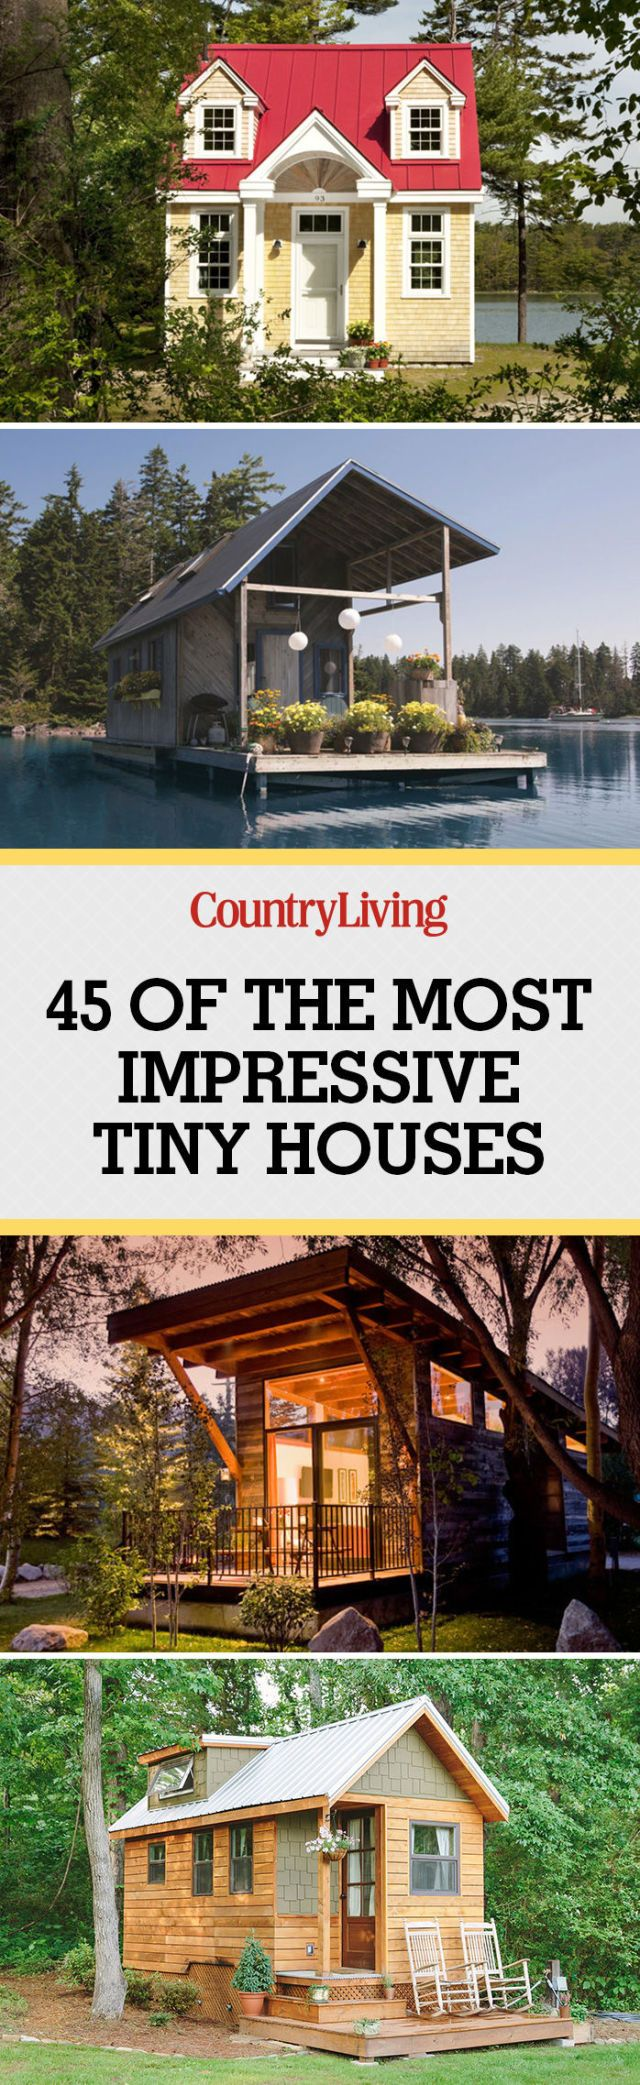 Pin these tiny homes!   - CountryLiving.com